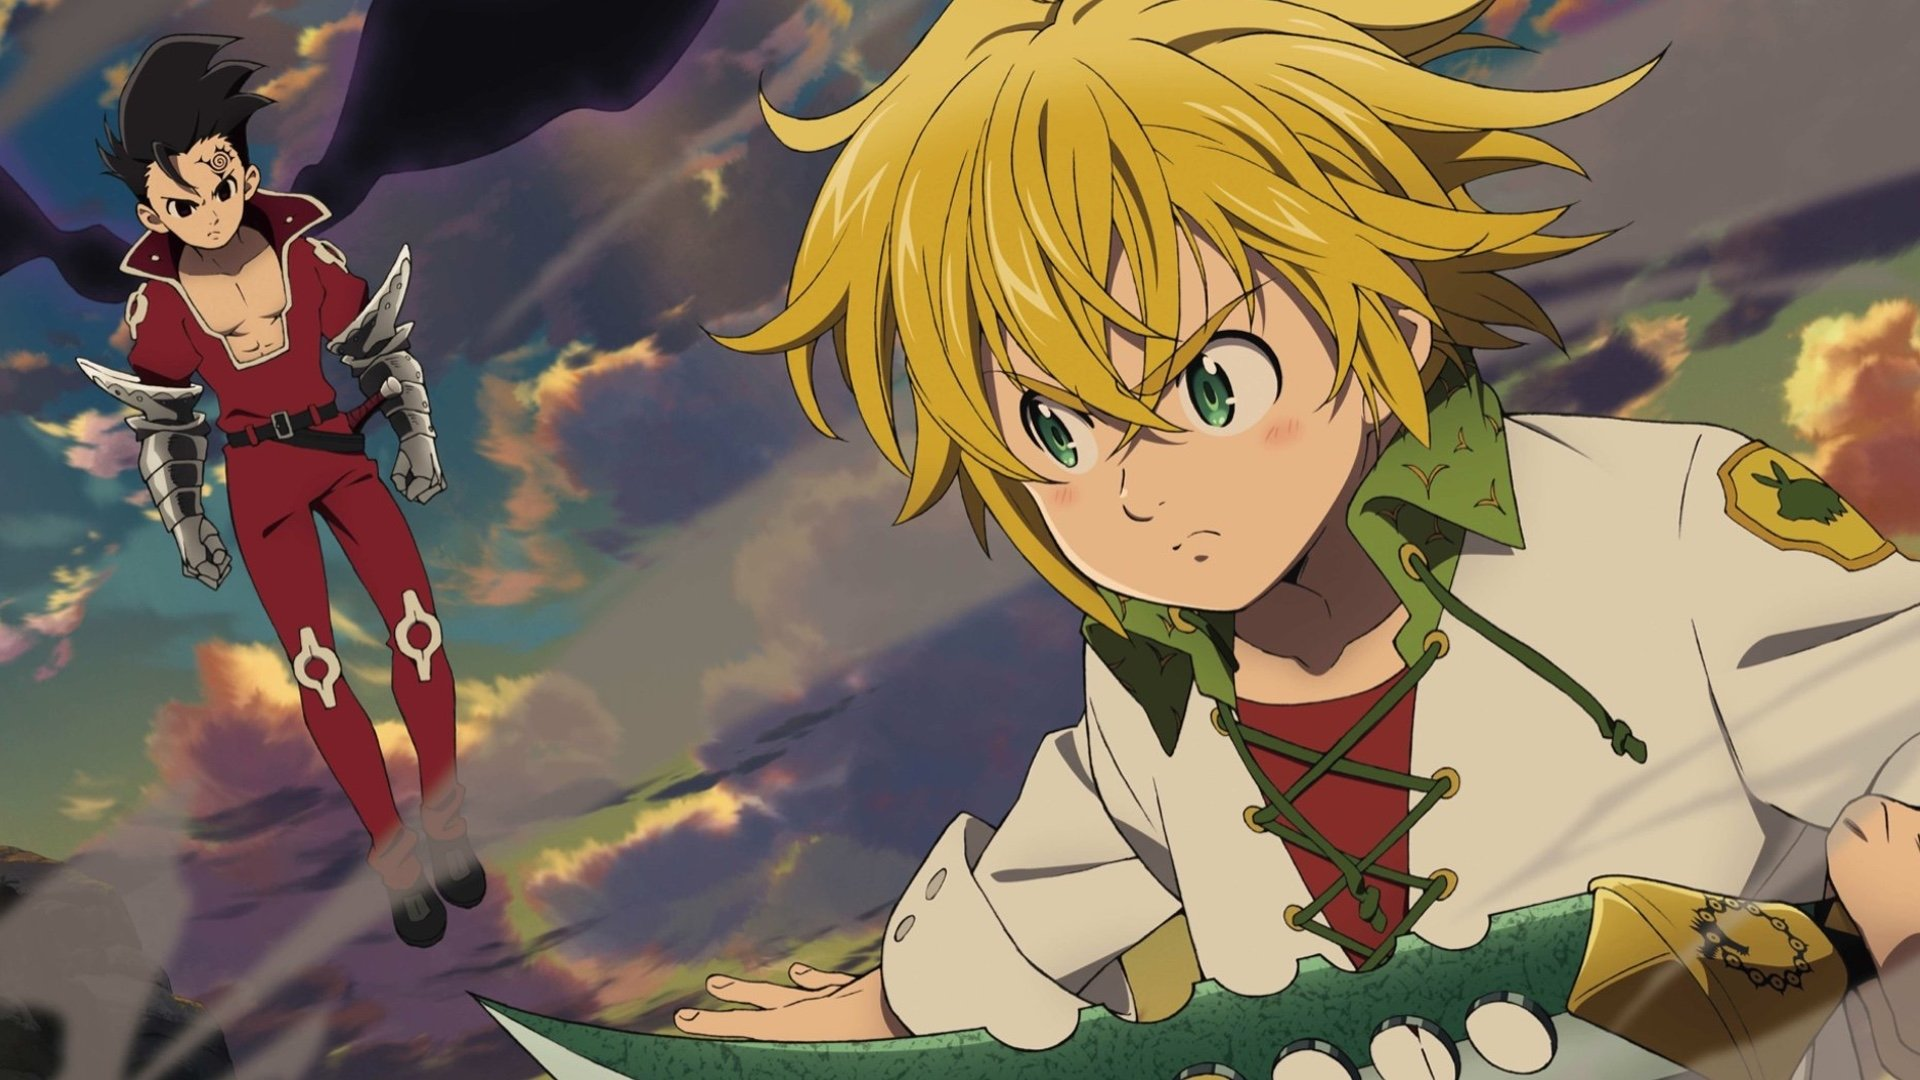 The Seven Deadly Sins Hd Wallpaper Background Image 1920x1080